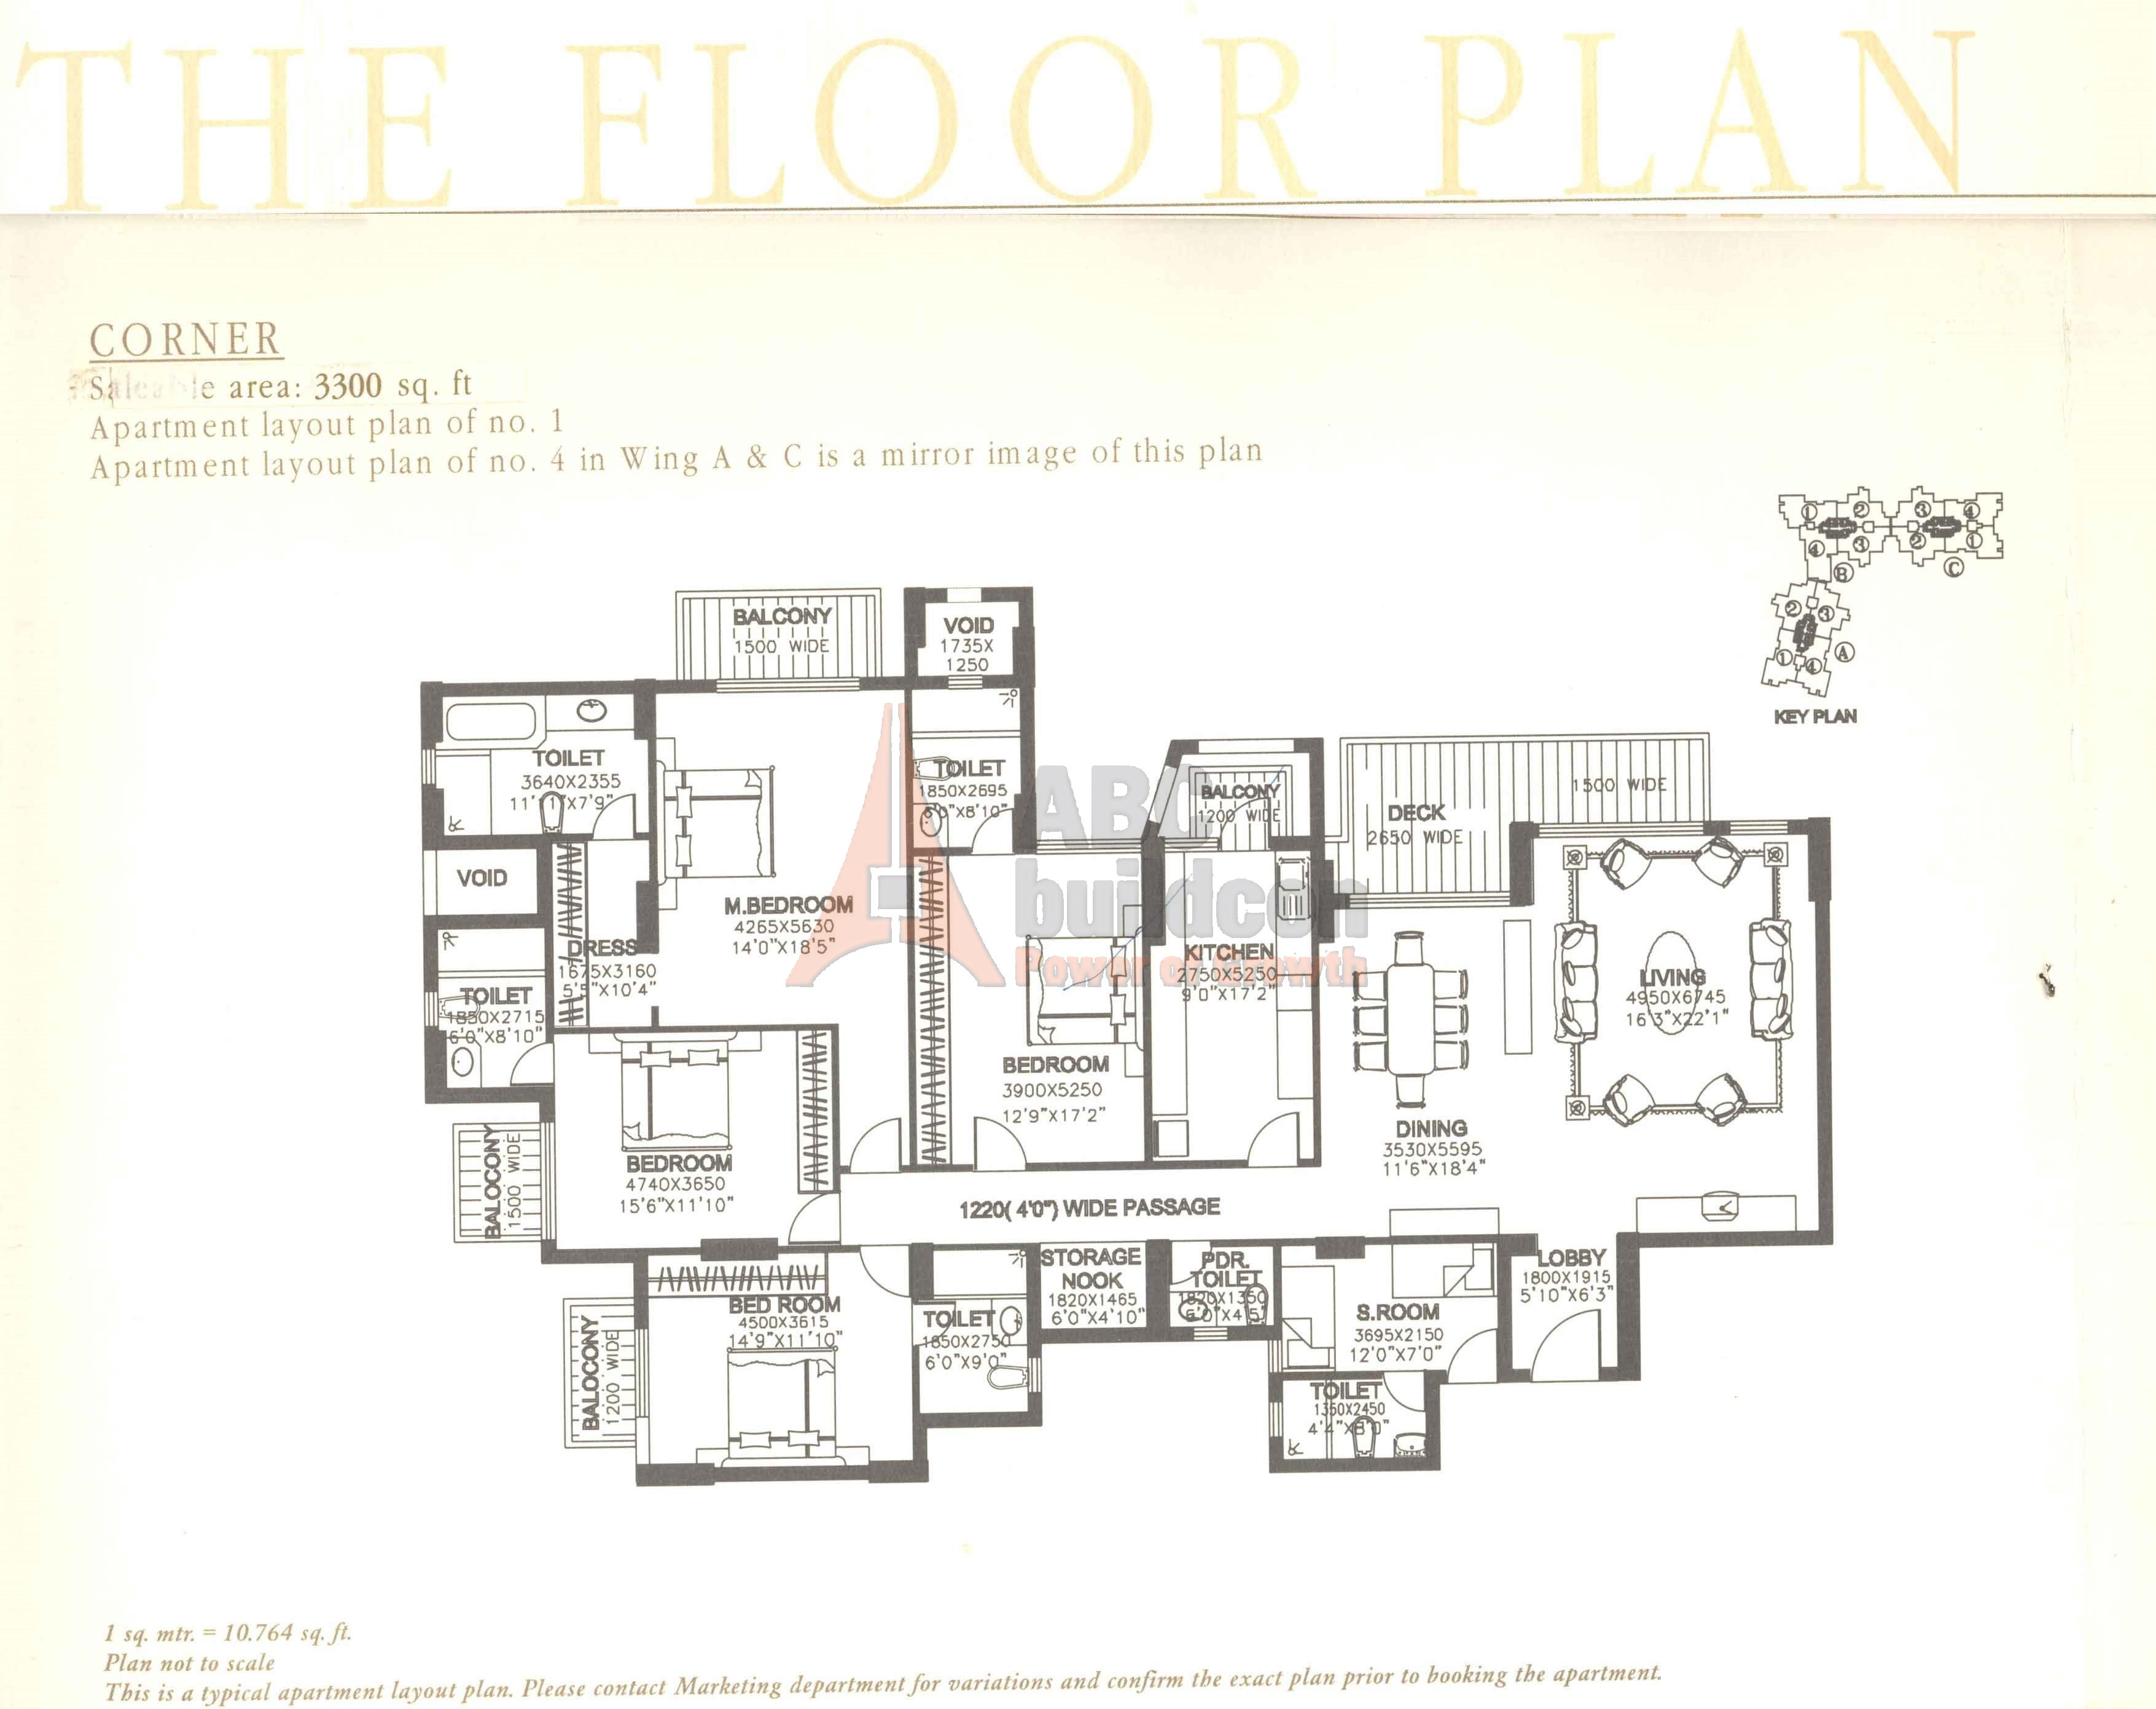 dlf summit floor plan floorplan in